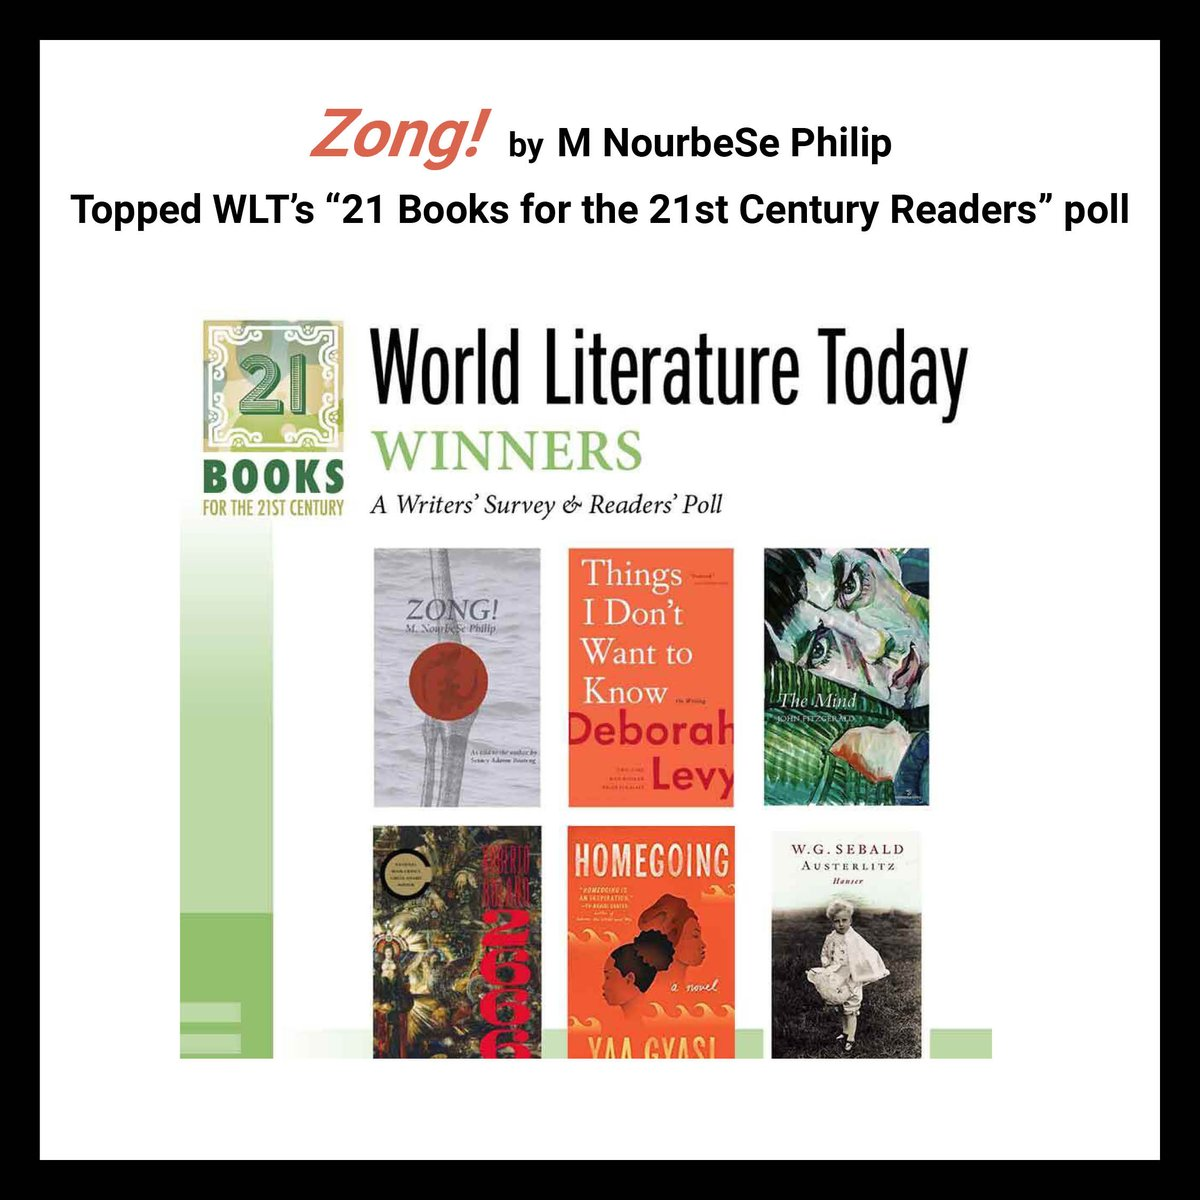 """test Twitter Media - Congratulations M. NourbeSe Philip! """"Zong!"""" voted #1 in #WorldLiteratureToday's """"21 Books for the 21st Century"""" readers' poll!  Read more here: https://t.co/kC8fGyxcji #21books21stcentury #zong @mnourbese #gregsonvgilbert #triangularslavetrade #historymatters https://t.co/L0mpyLUAs3"""